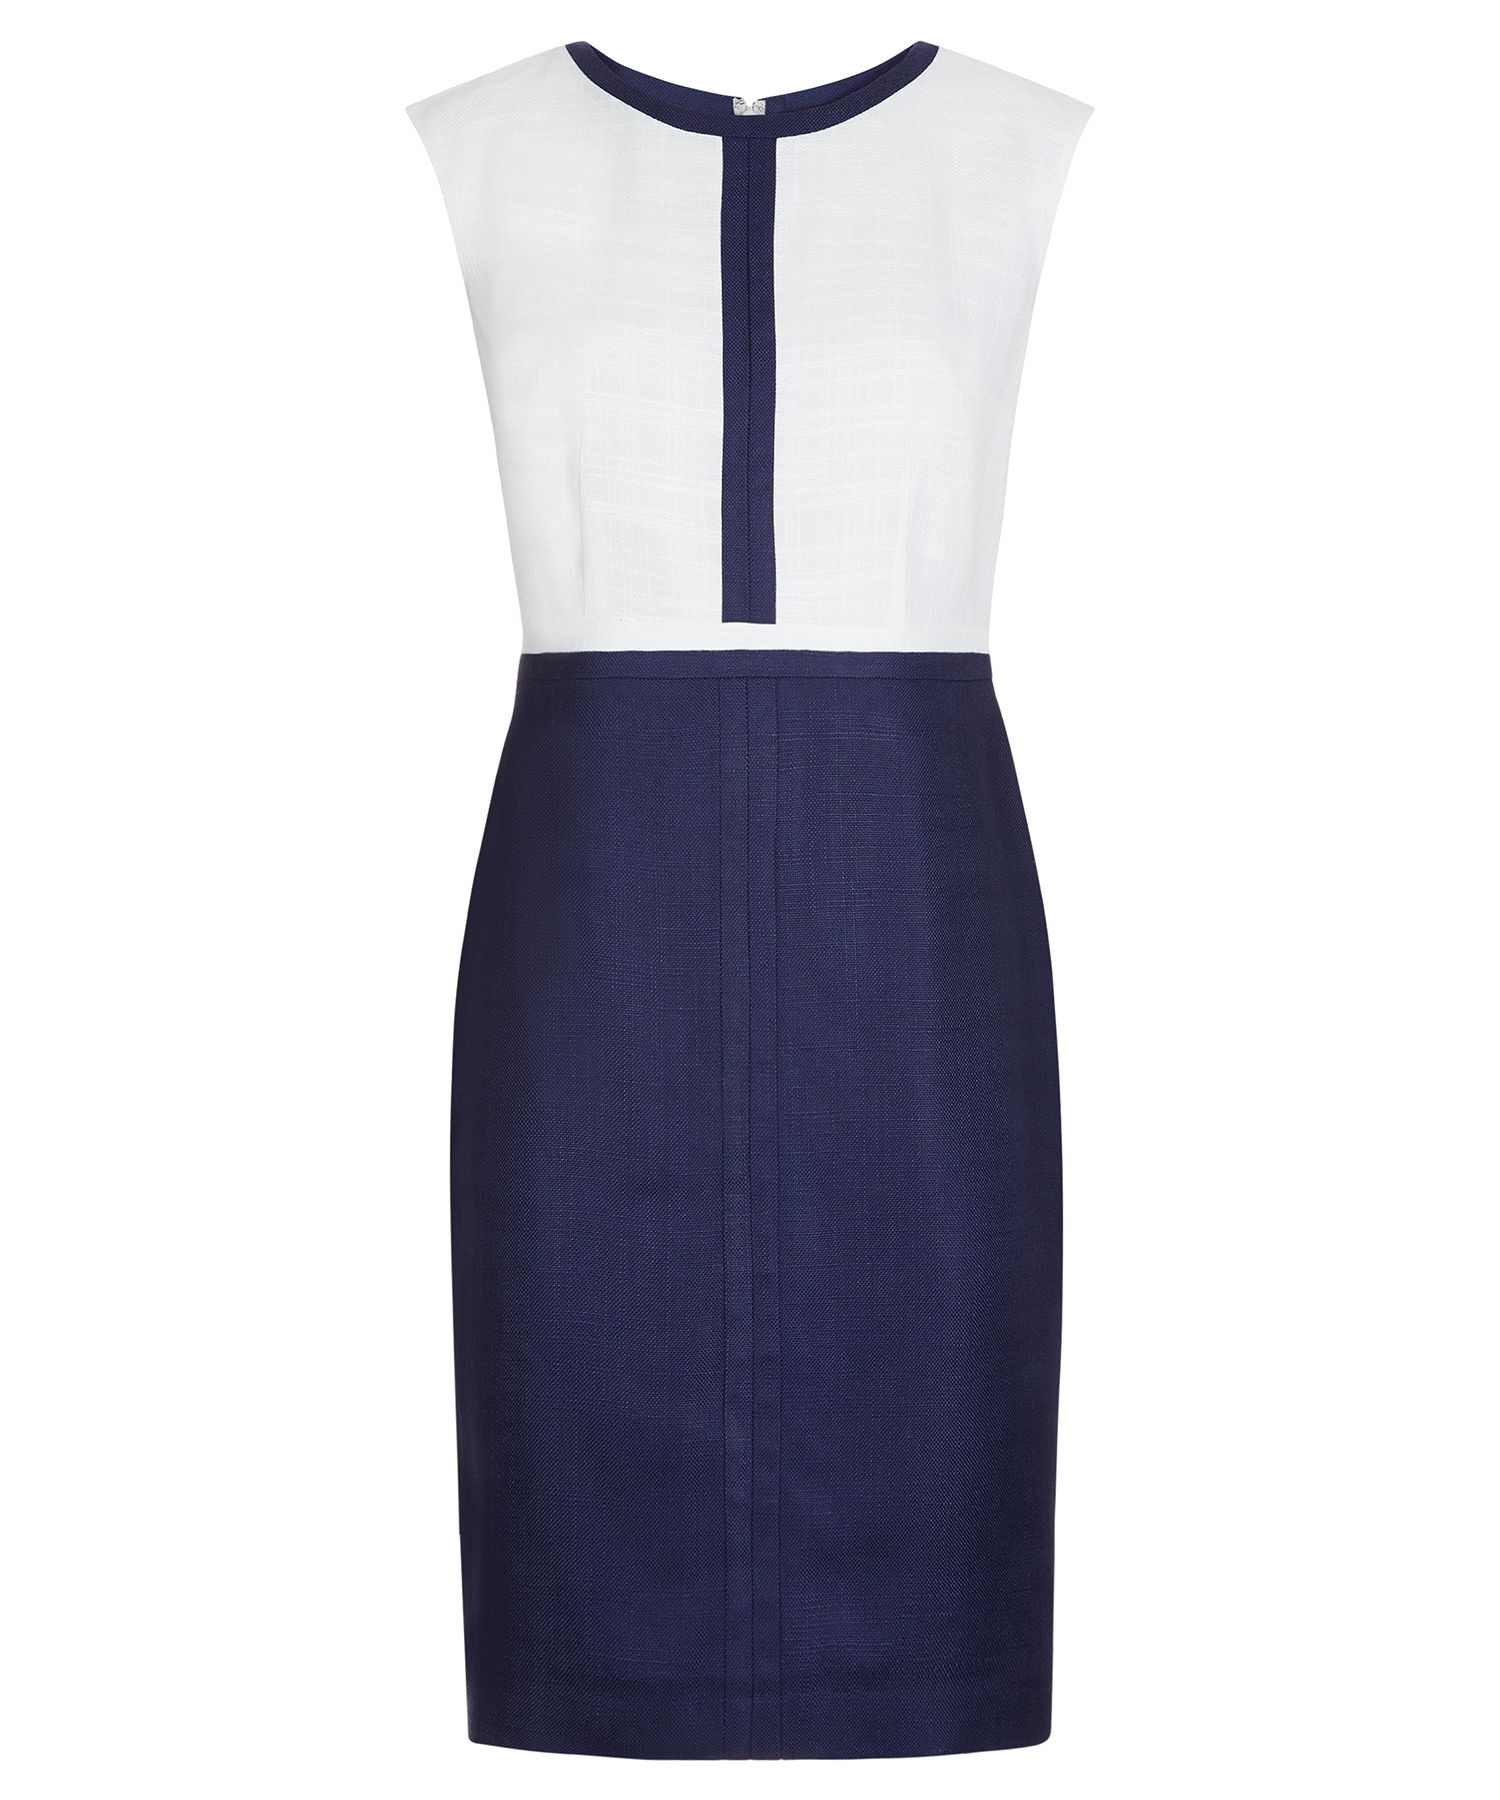 Hobbs Sorcha Dress, Blue